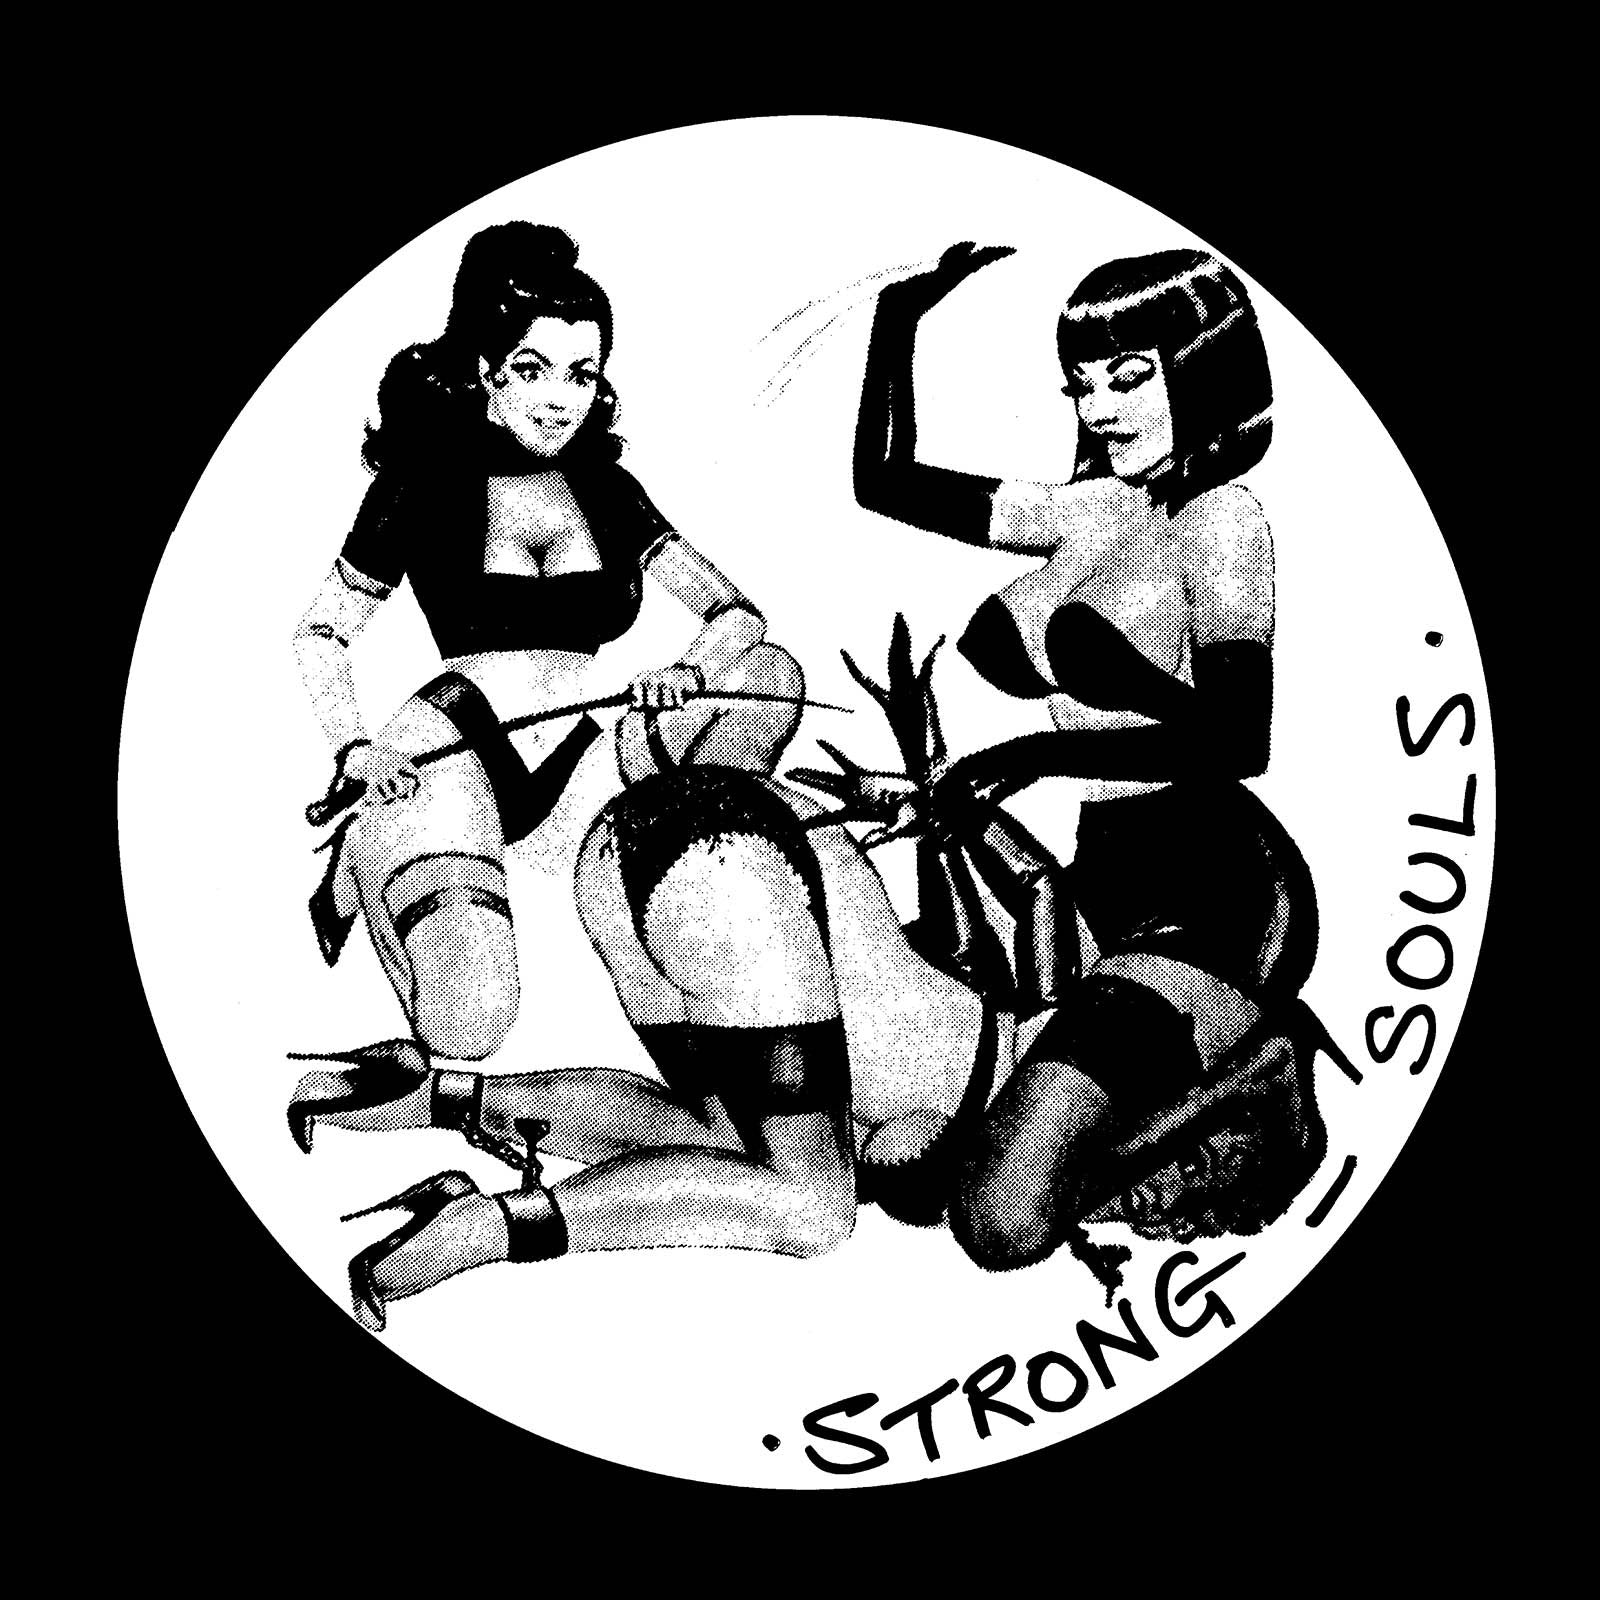 Strong Souls ft. Twanna X - Sensual / Original Ground , Vinyl - Black Market Records, Unearthed Sounds